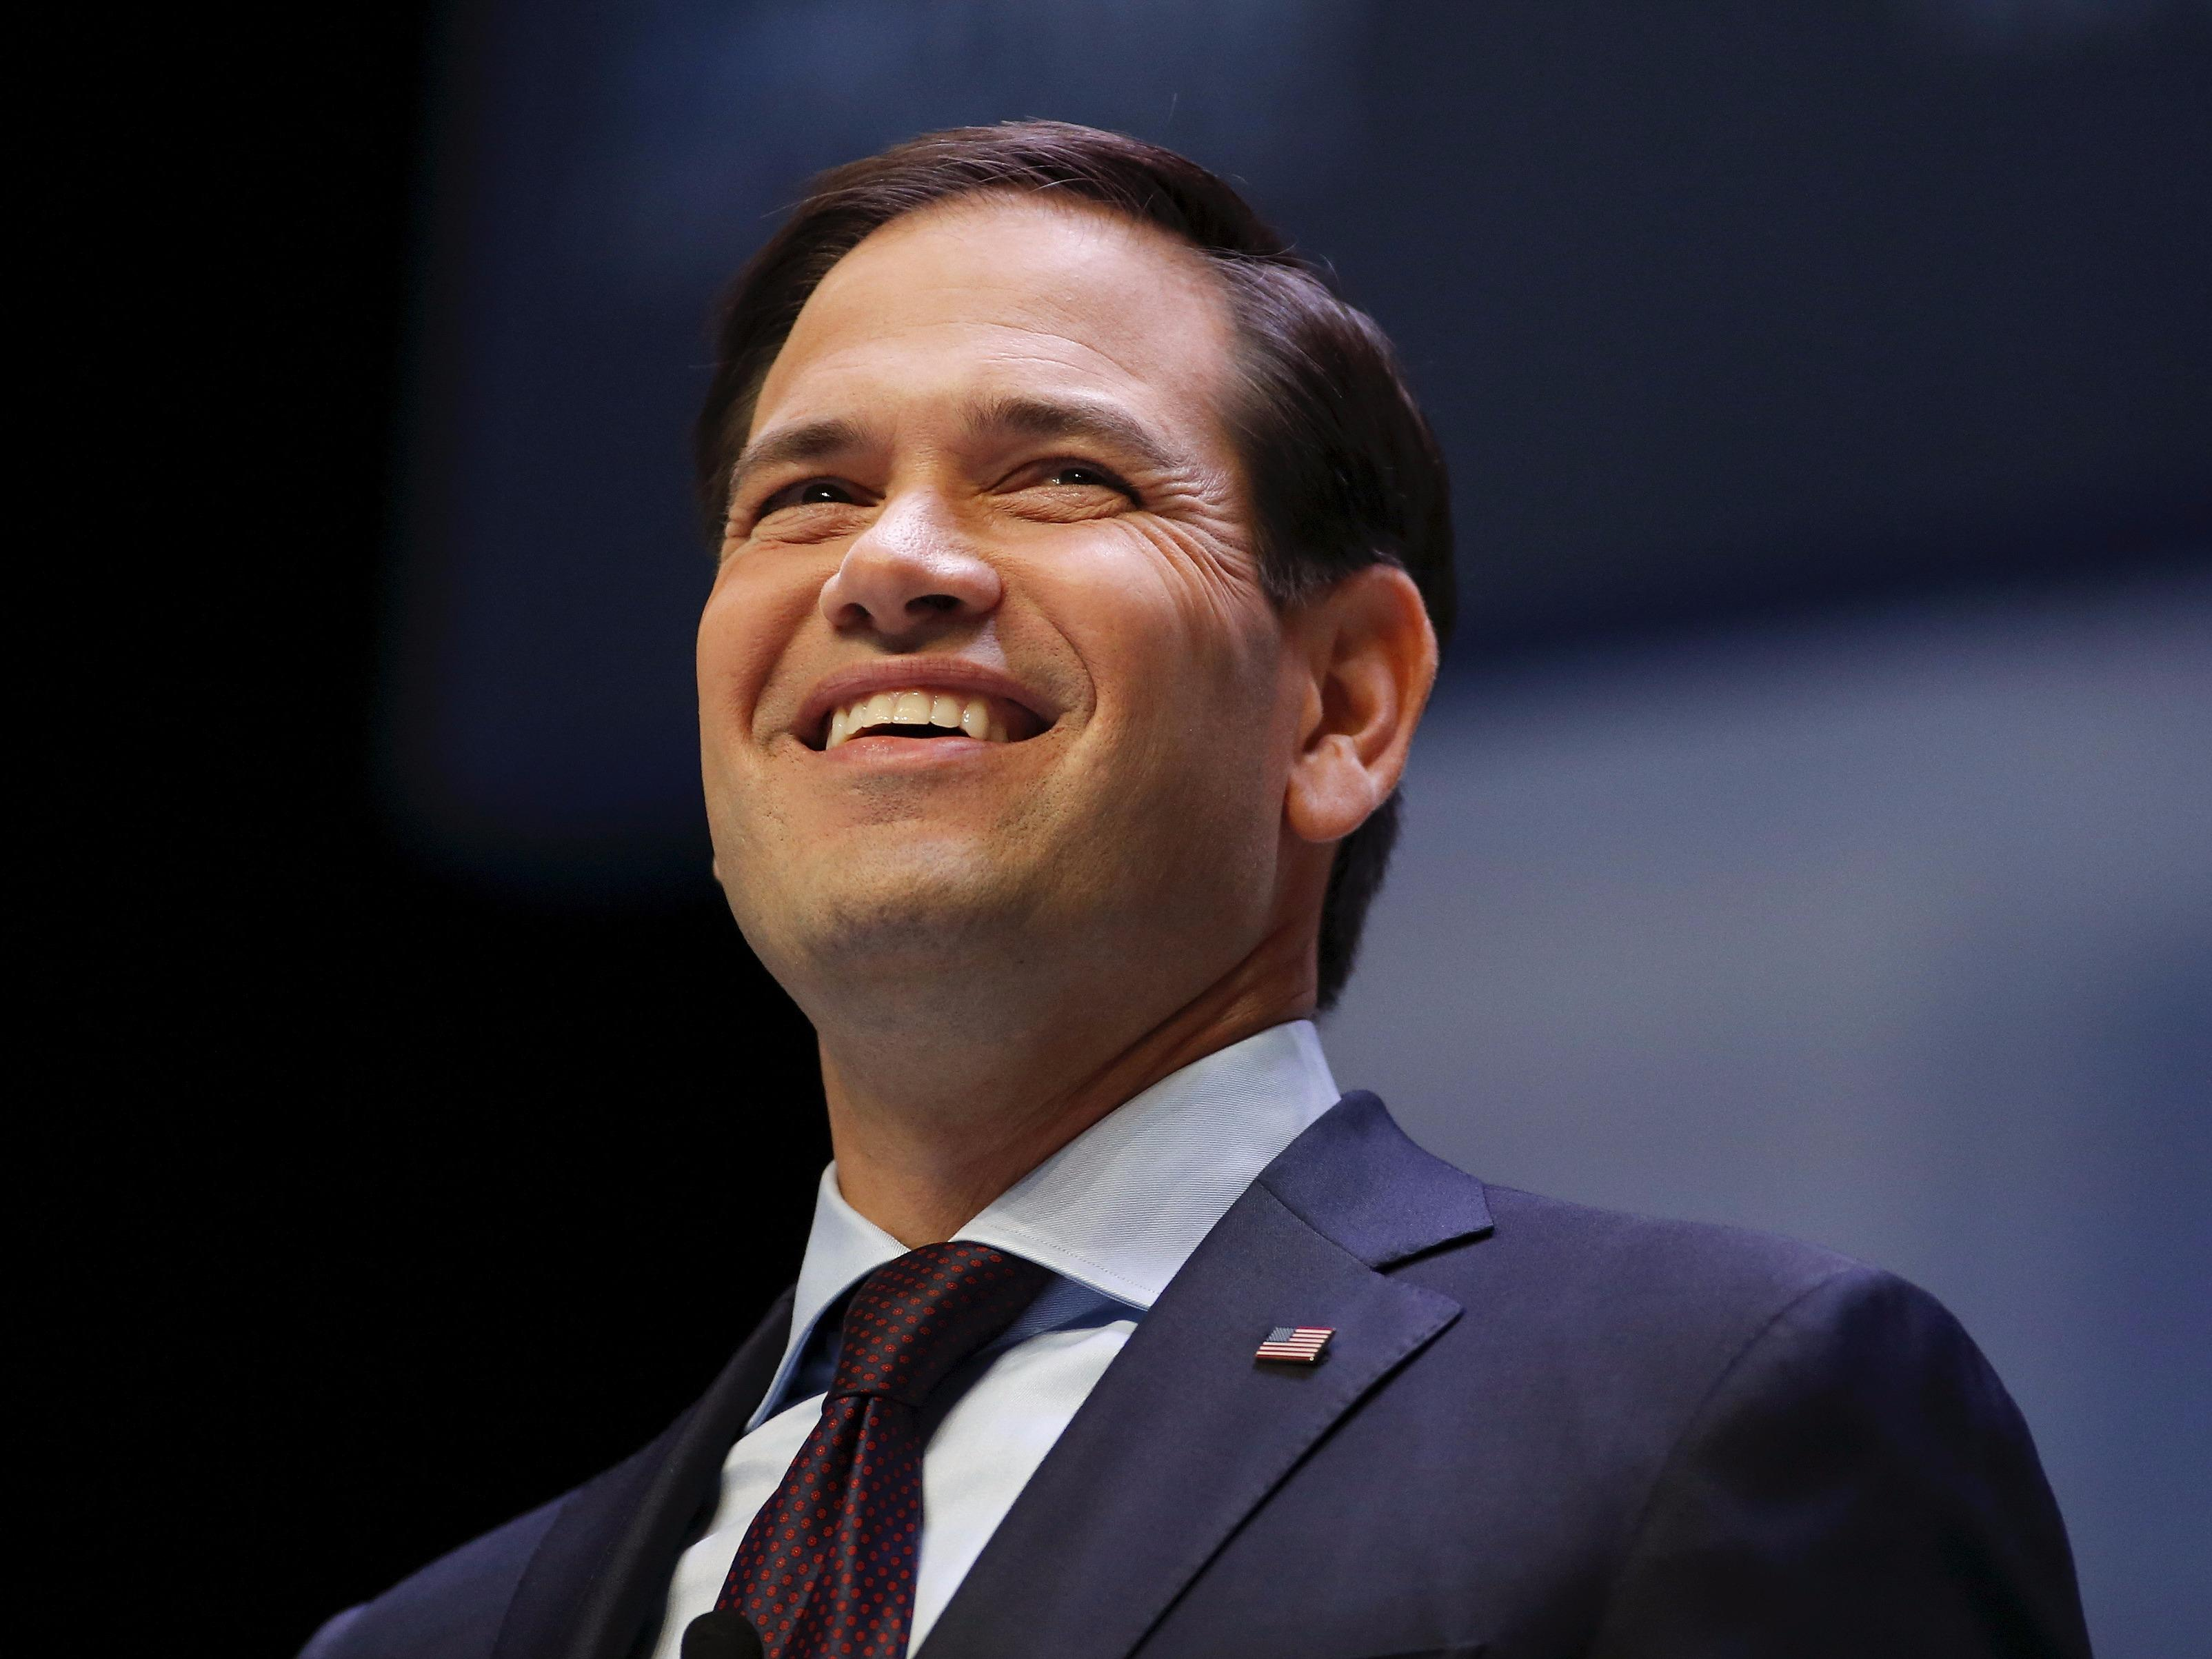 Marco Rubio says one startup would've vastly improved life for his mom